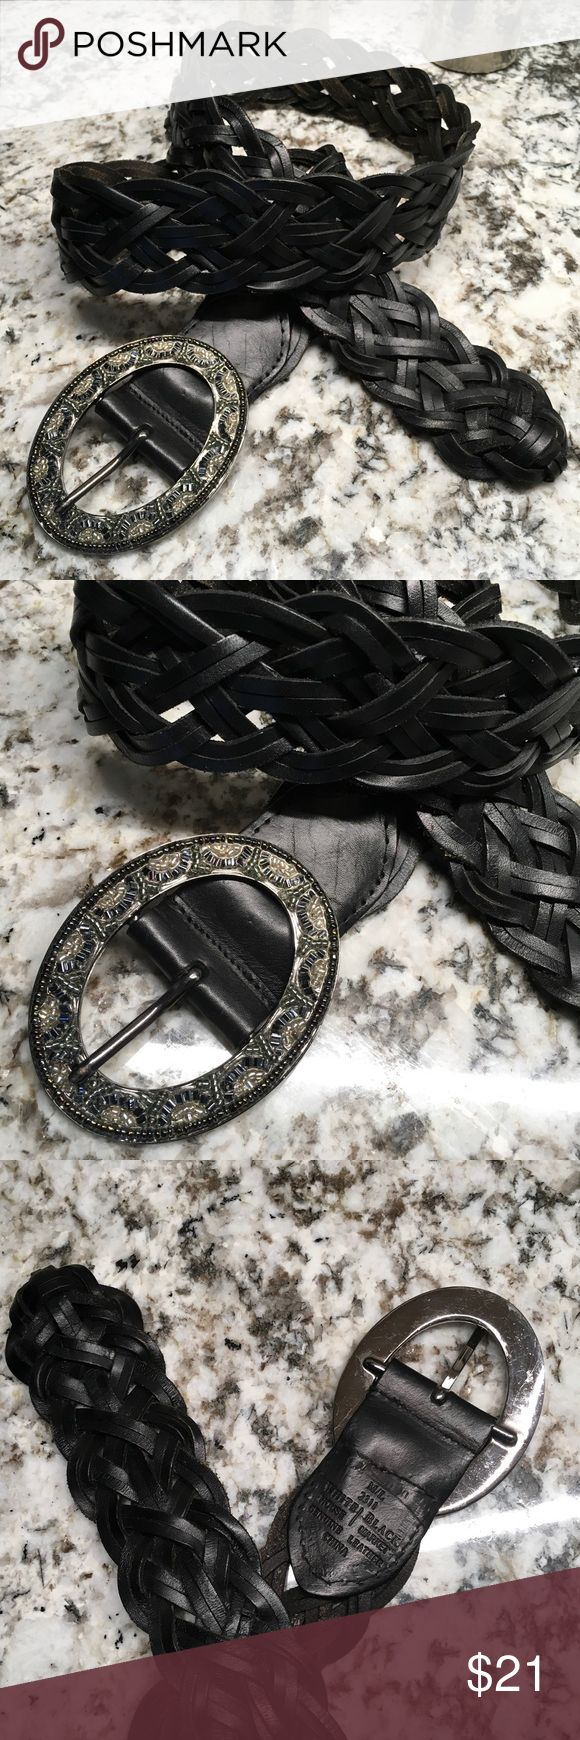 "White House/Black Market Woven Leather Belt Like-new belt from White House/Black Market.  All leather.  Black woven.  Overall length is 42"".  Closed max length is 39"".  No defined holes so you can cinch this as tightly as you'd like!   1 3/4"" wide.  Buckle is moderately embellished and measures 3 1/2"" by 2 3/4"". White House Black Market Accessories Belts"